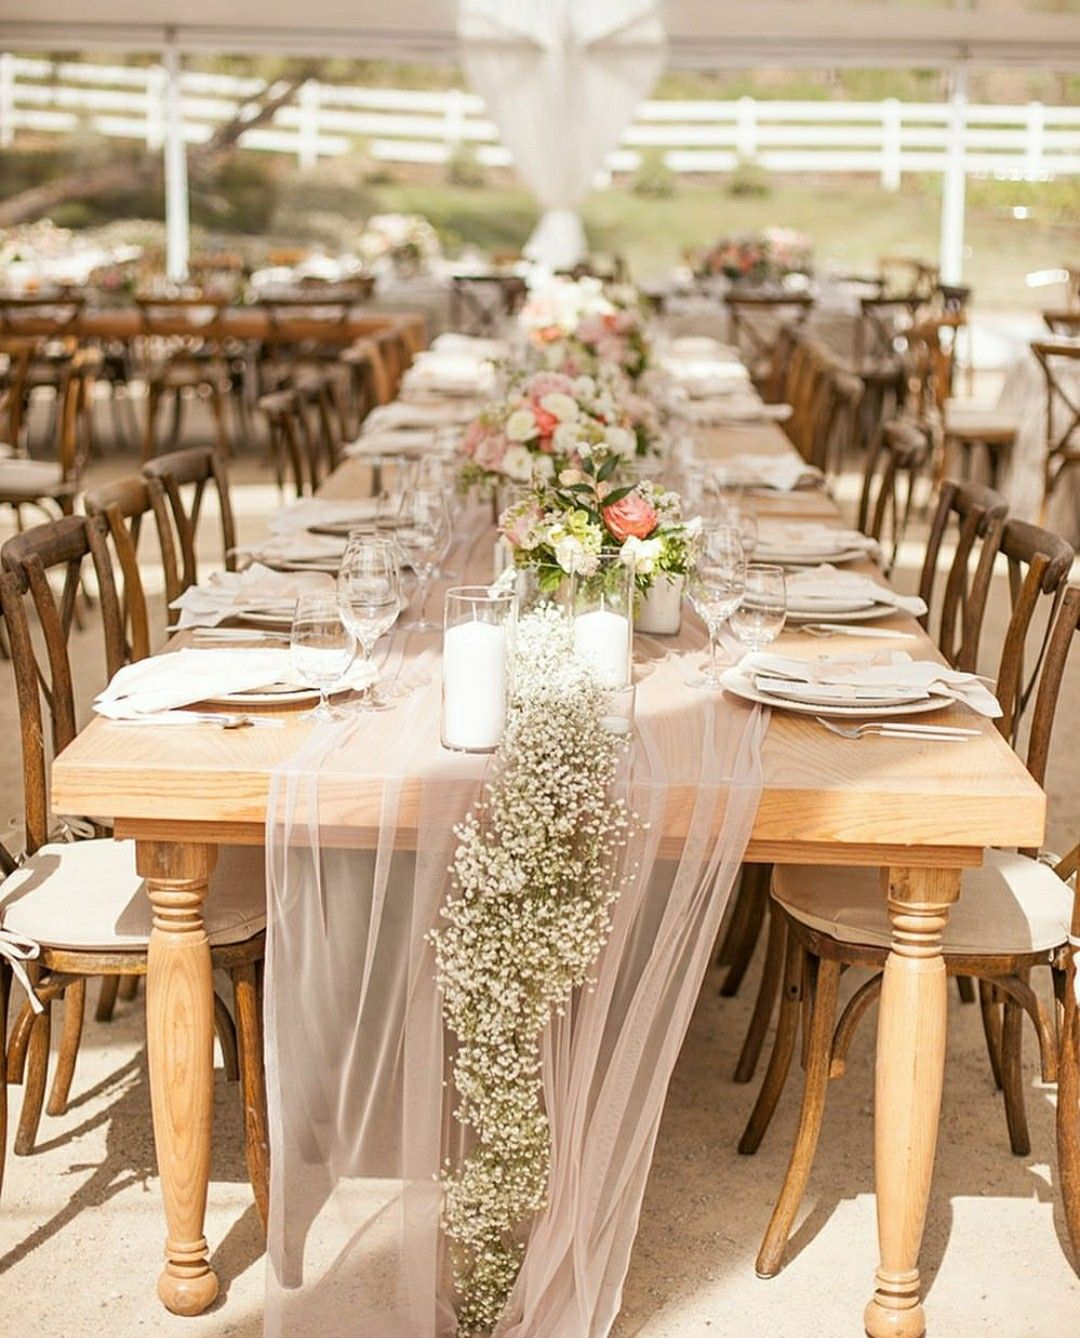 7 Barn Wedding Decoration Ideas For A Spring Wedding: Timeless Colors For A Summer Wedding